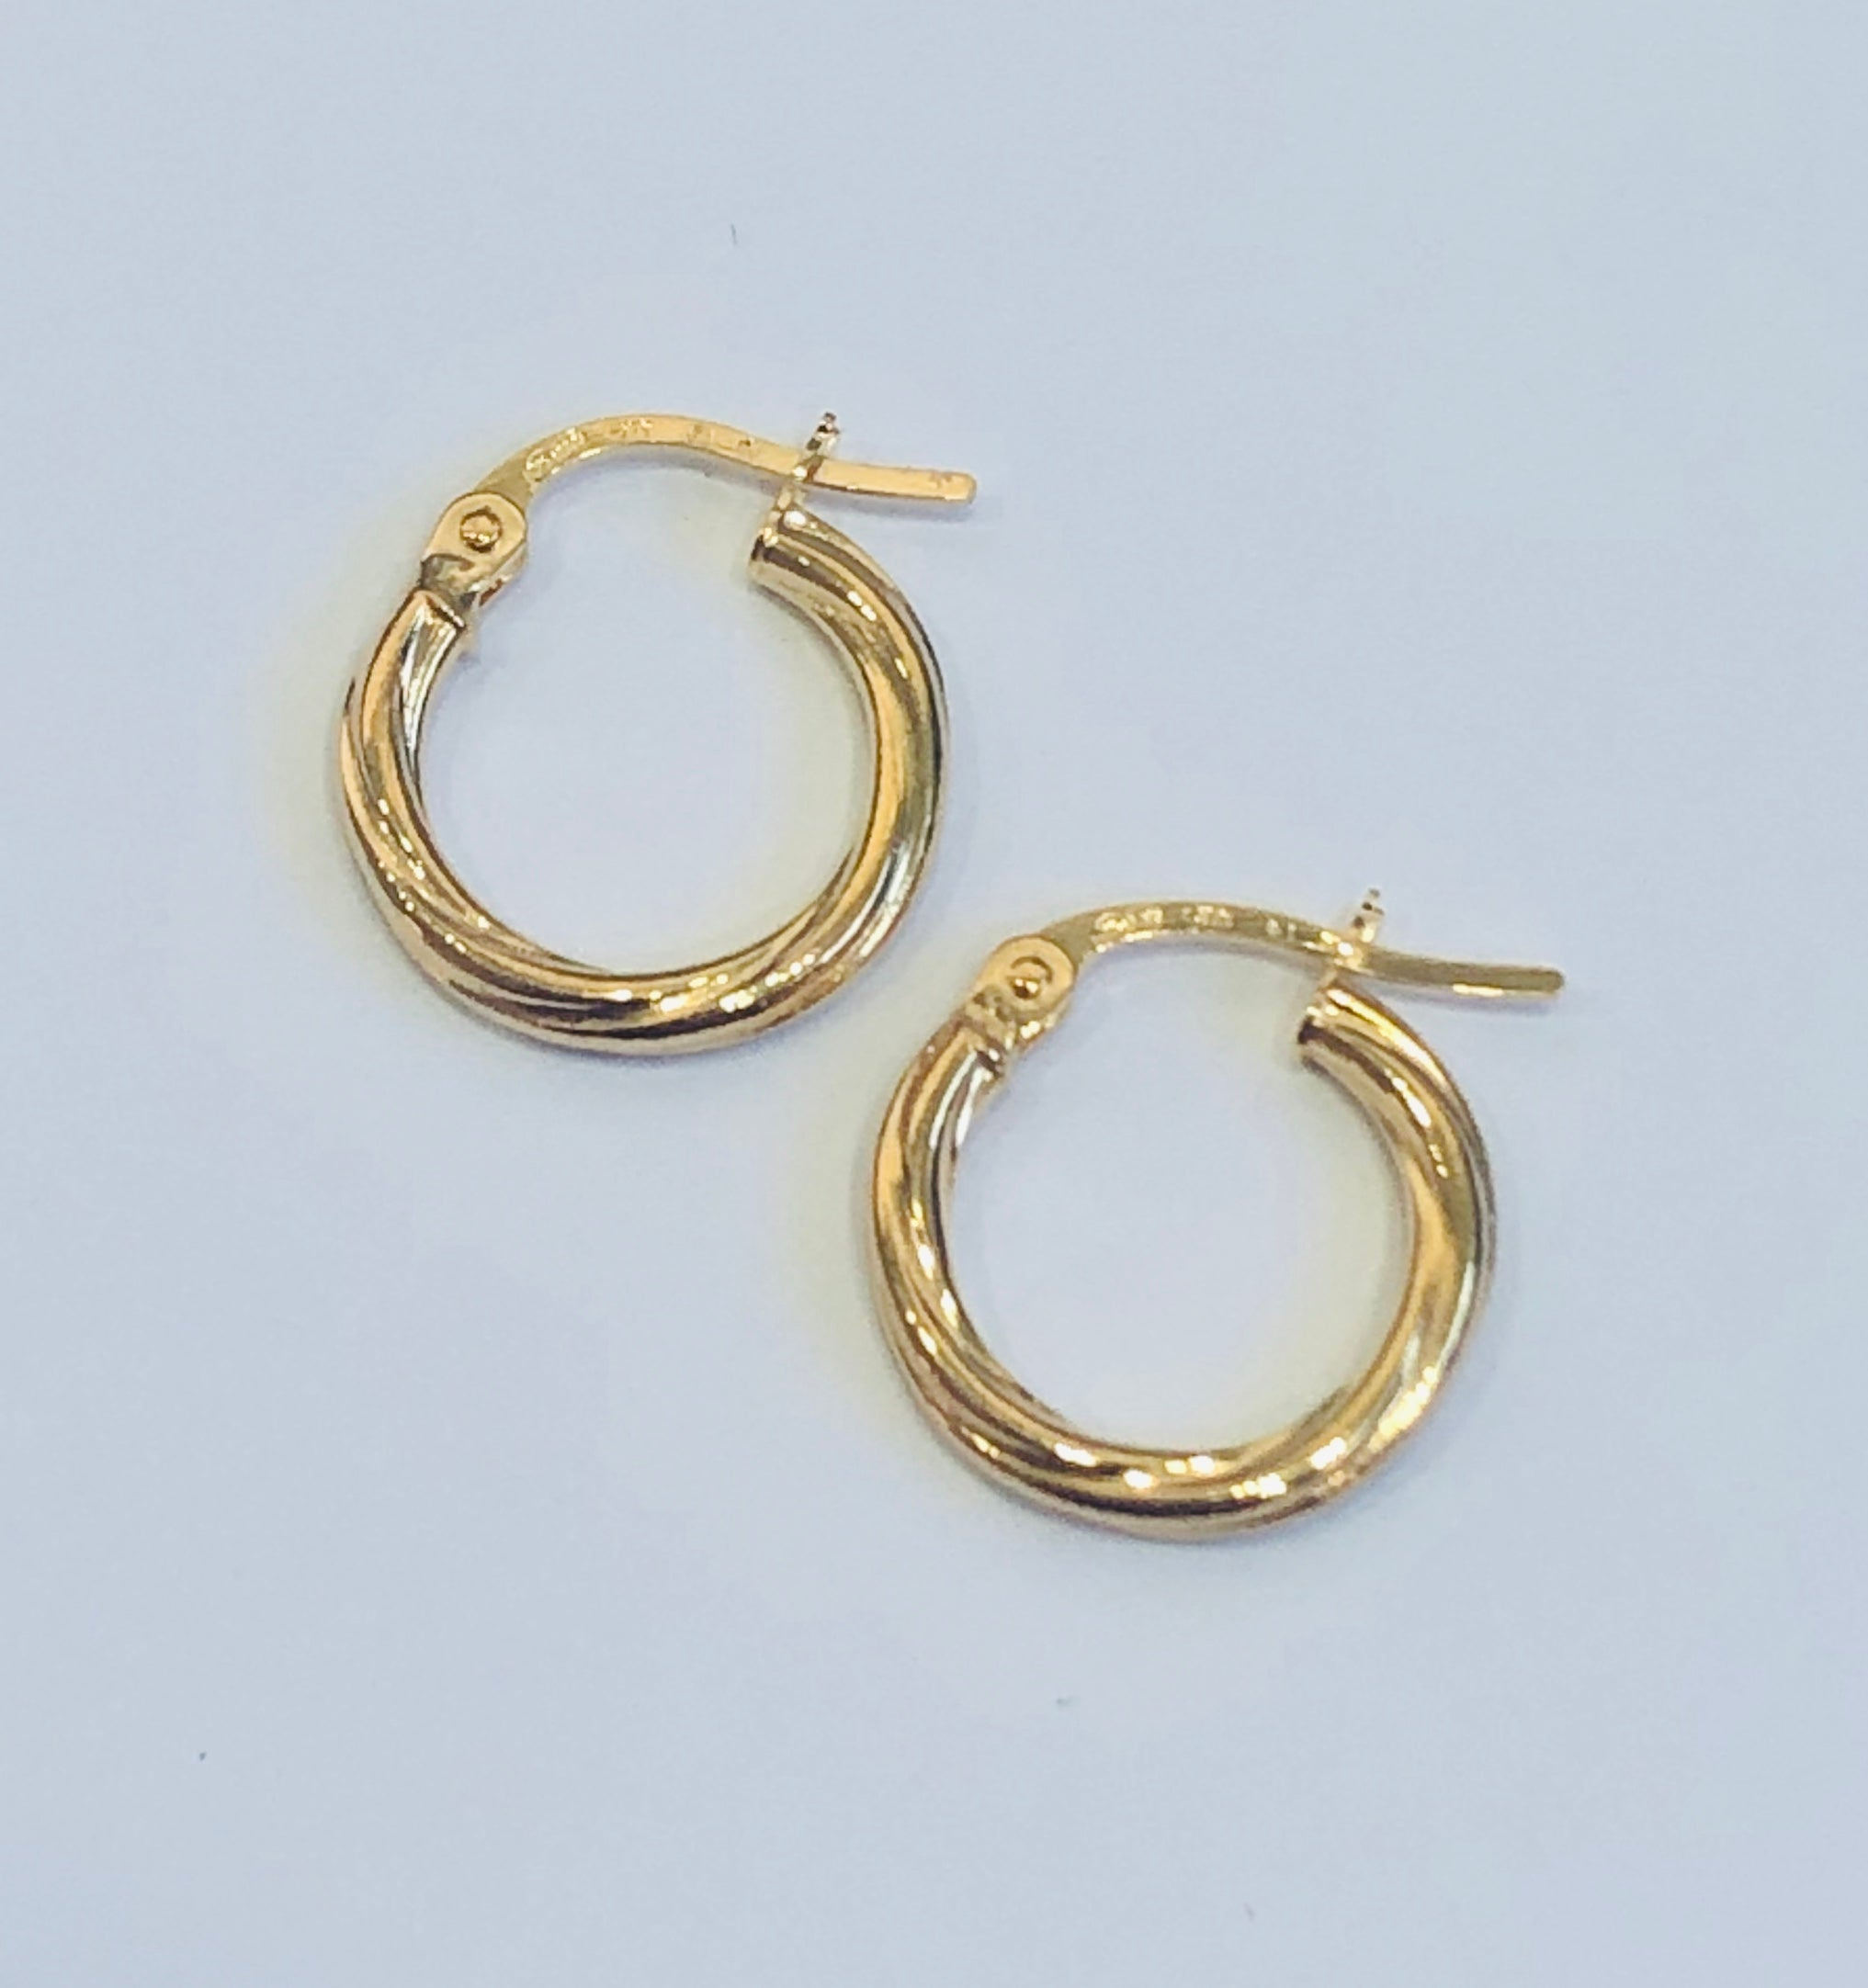 9ct Gold Twist Tube Hoop Earrings 10mm x 2mm - 003